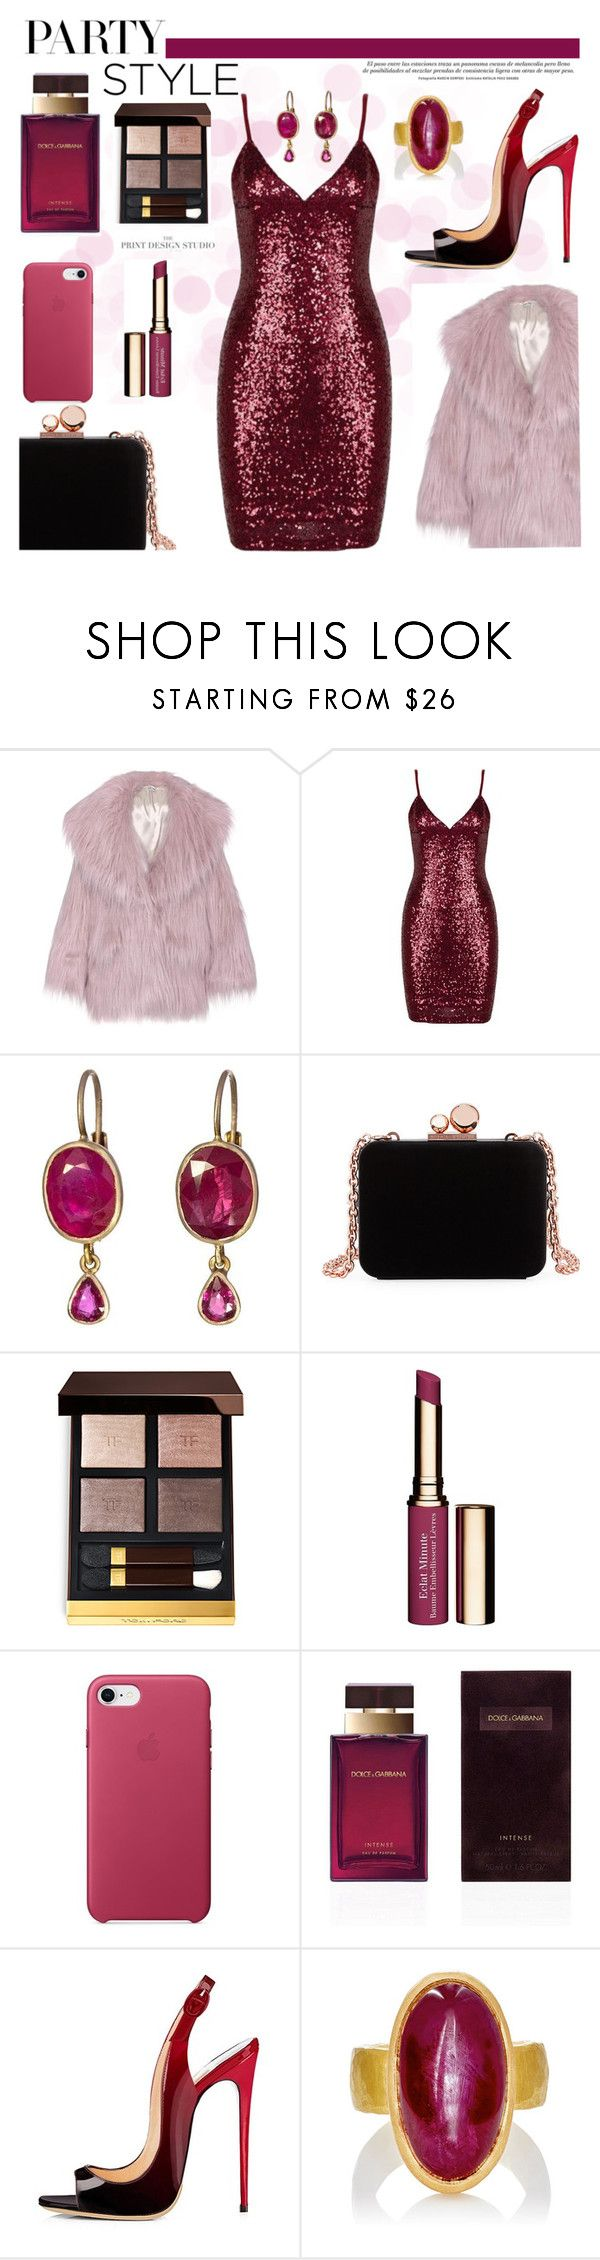 """""""Fashion & Decor  It's all about the fun"""" by efriersob ❤ liked on Polyvore featuring Miu Miu, Anaconda, Sophia Webster, Tom Ford, Clarins, Dolce&Gabbana and Malcolm Betts"""